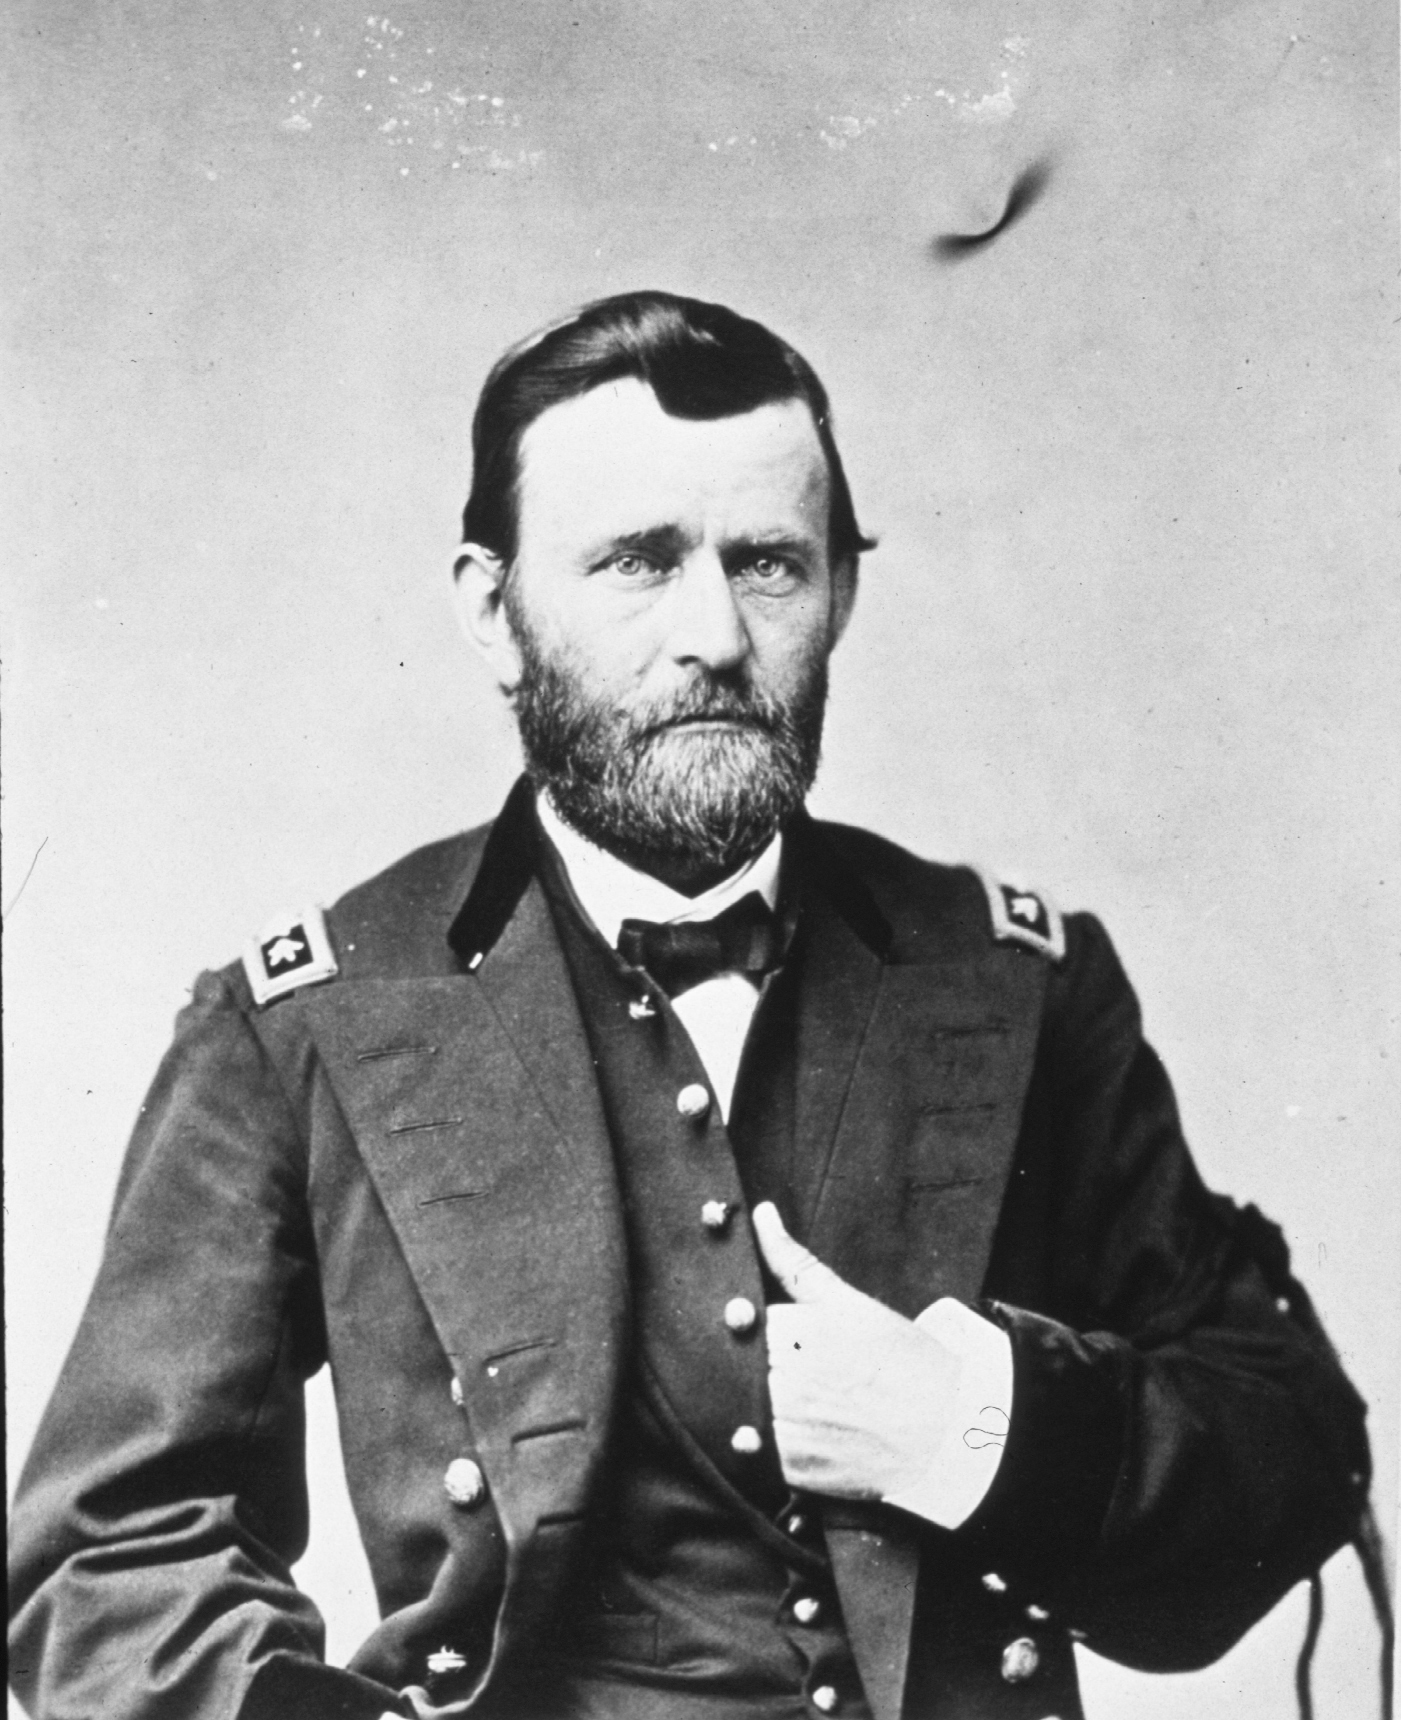 General ulysses s grant portrait.